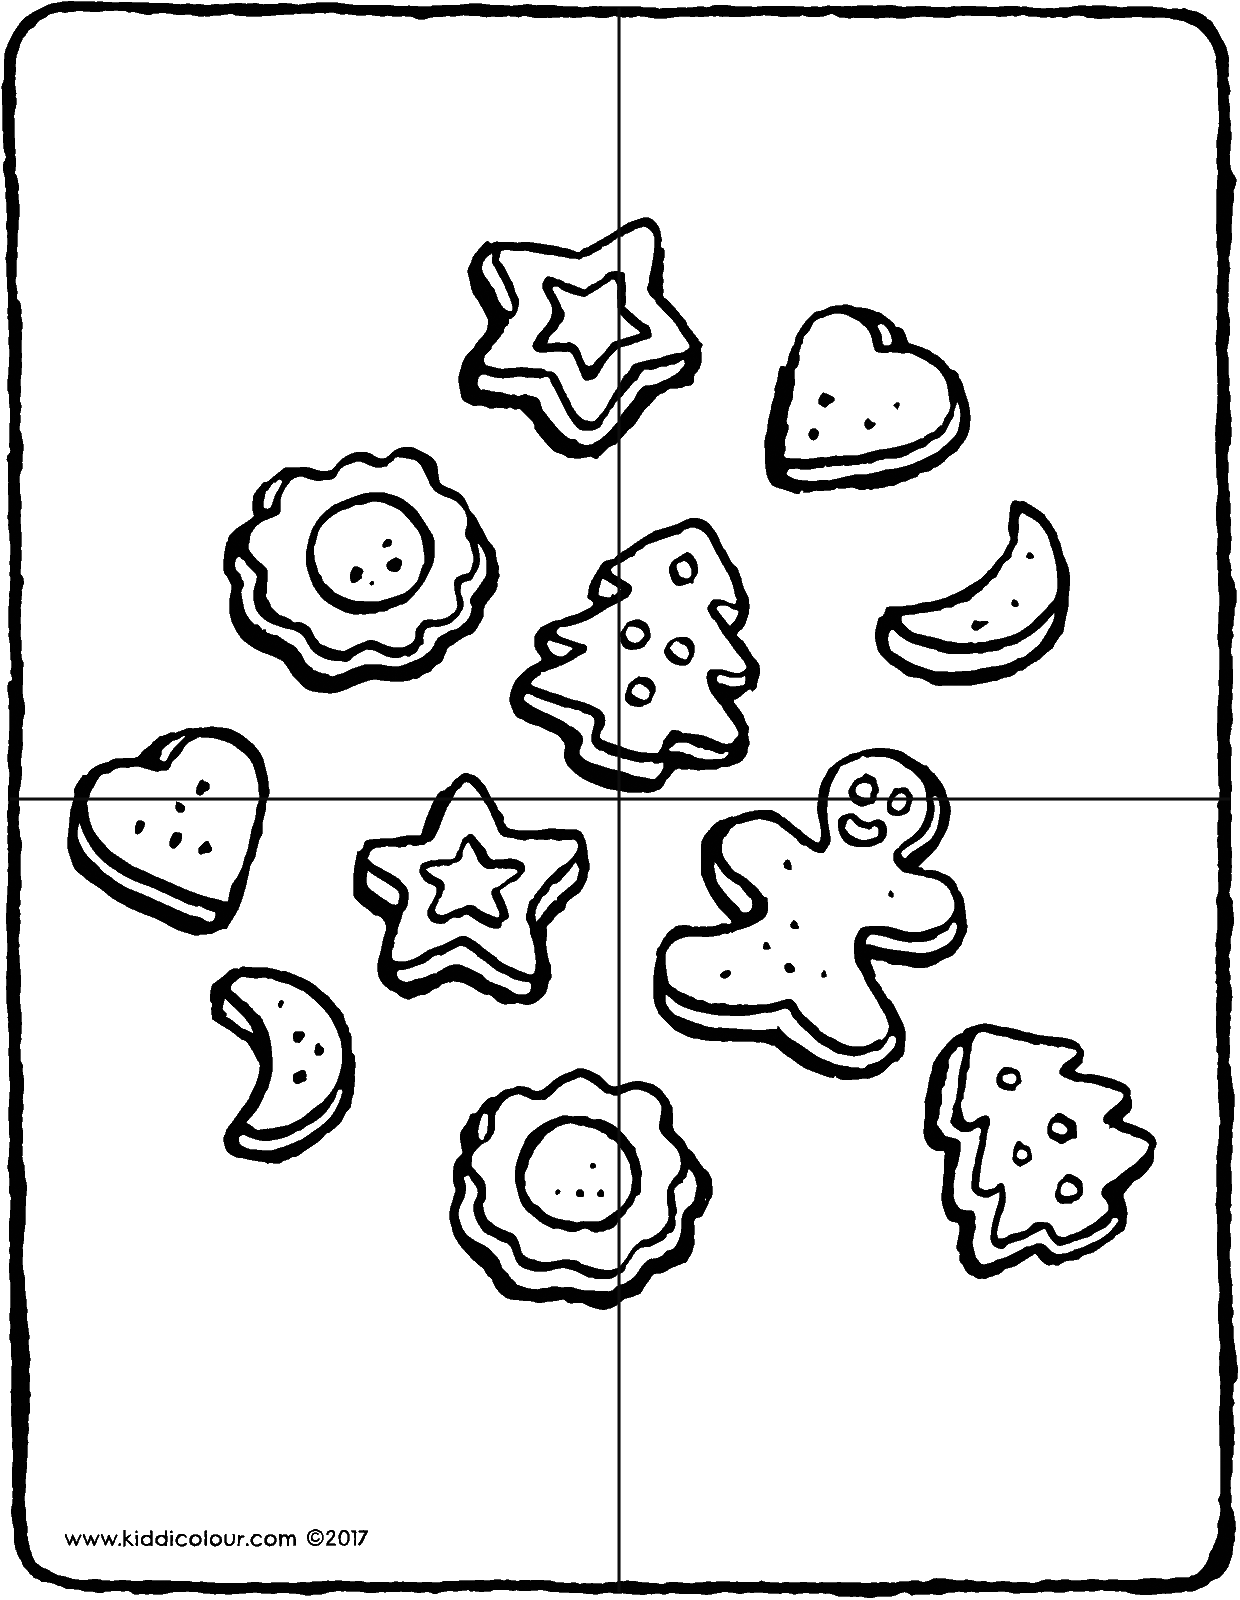 Christmas biscuits puzzle colouring page drawing picture 01V